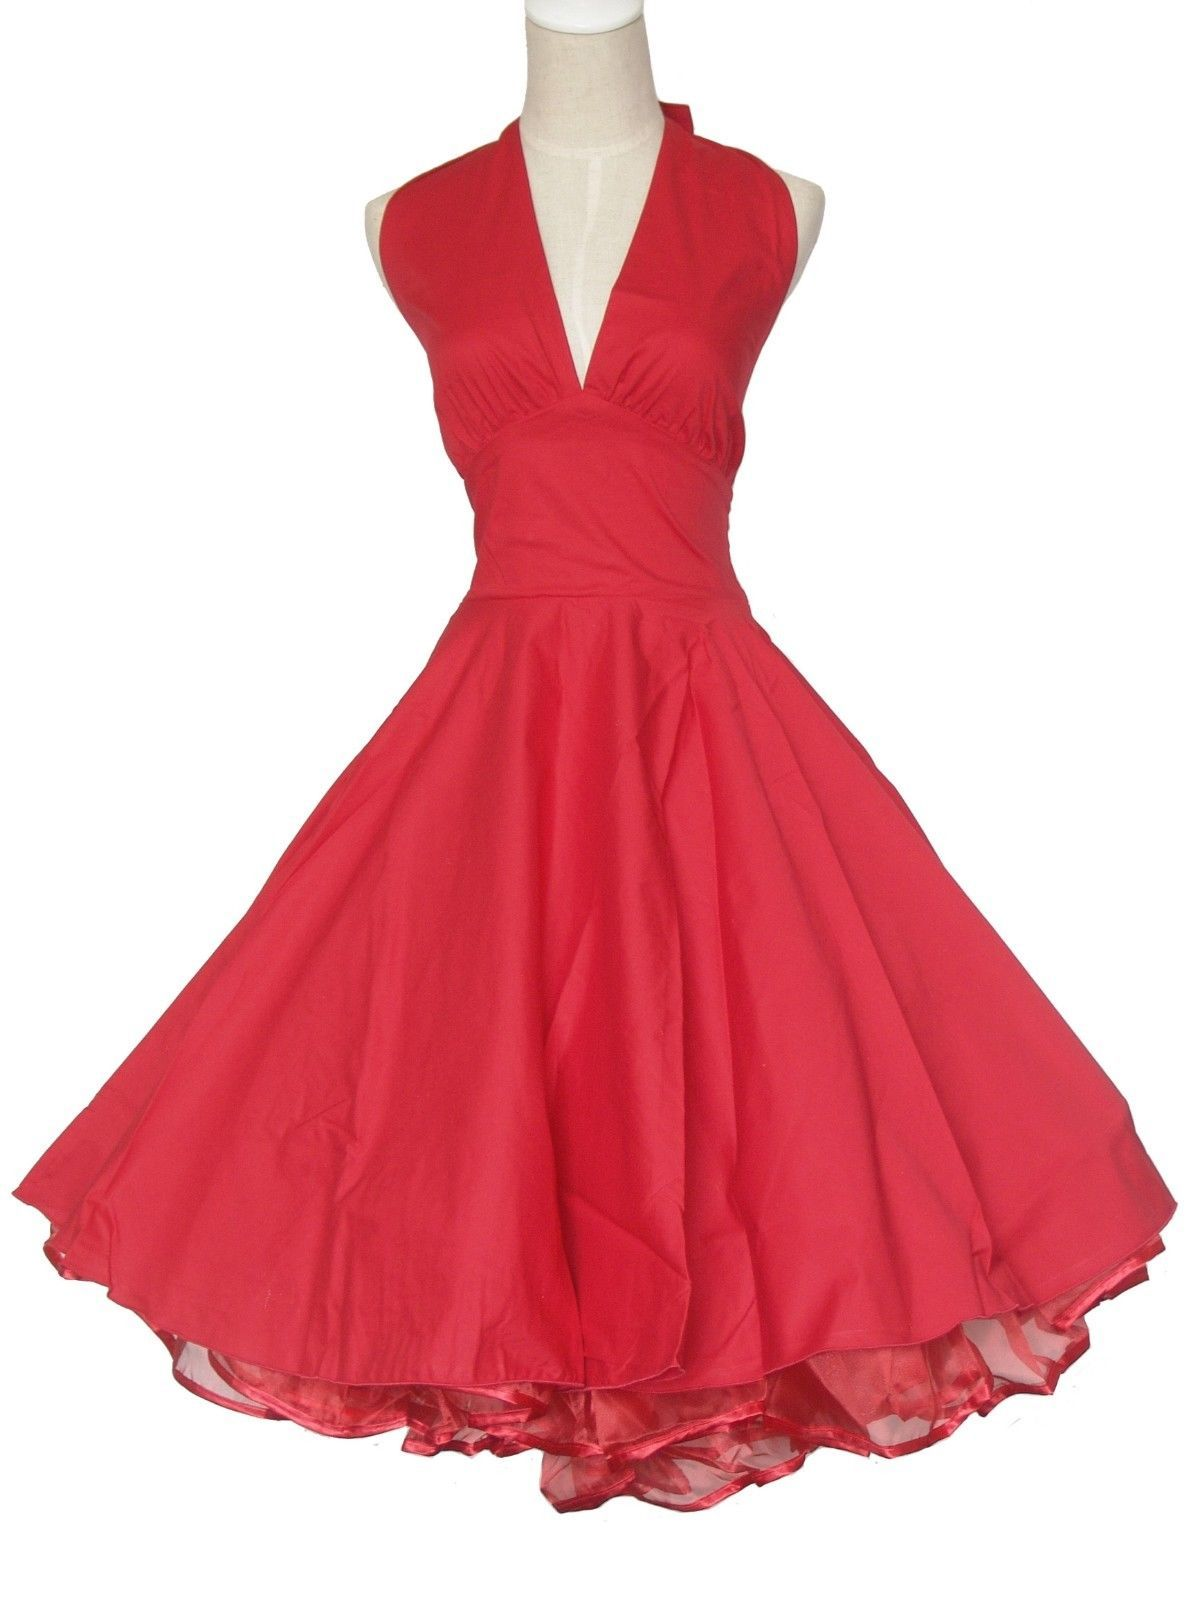 1c00c1e81dac Vintage Dancing Party Ball Prom Swing Jive Rockabilly Dresses Skirt 50s  Cotton S